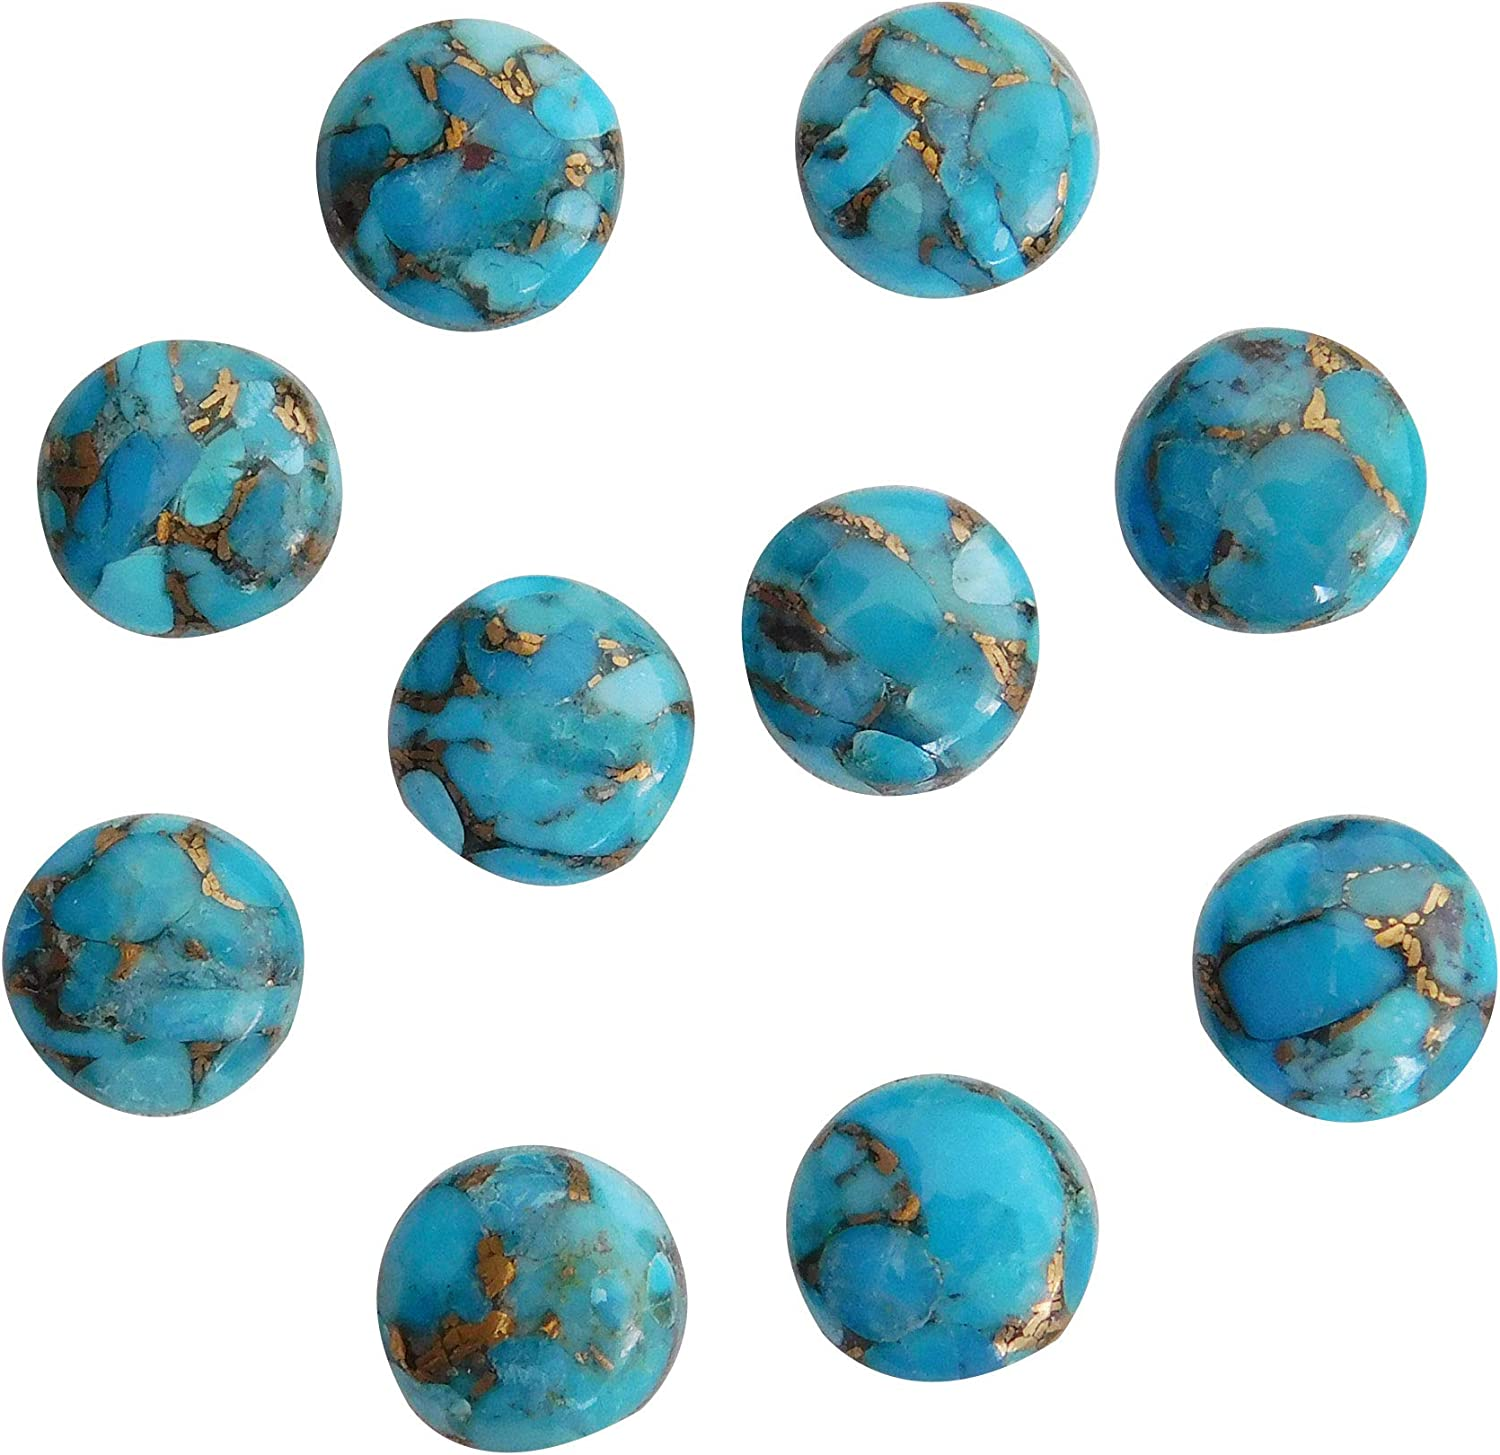 11x11 mm Round Natural Blue Cabochon 4 years warranty Copper safety Turquoise Jewelry Ma